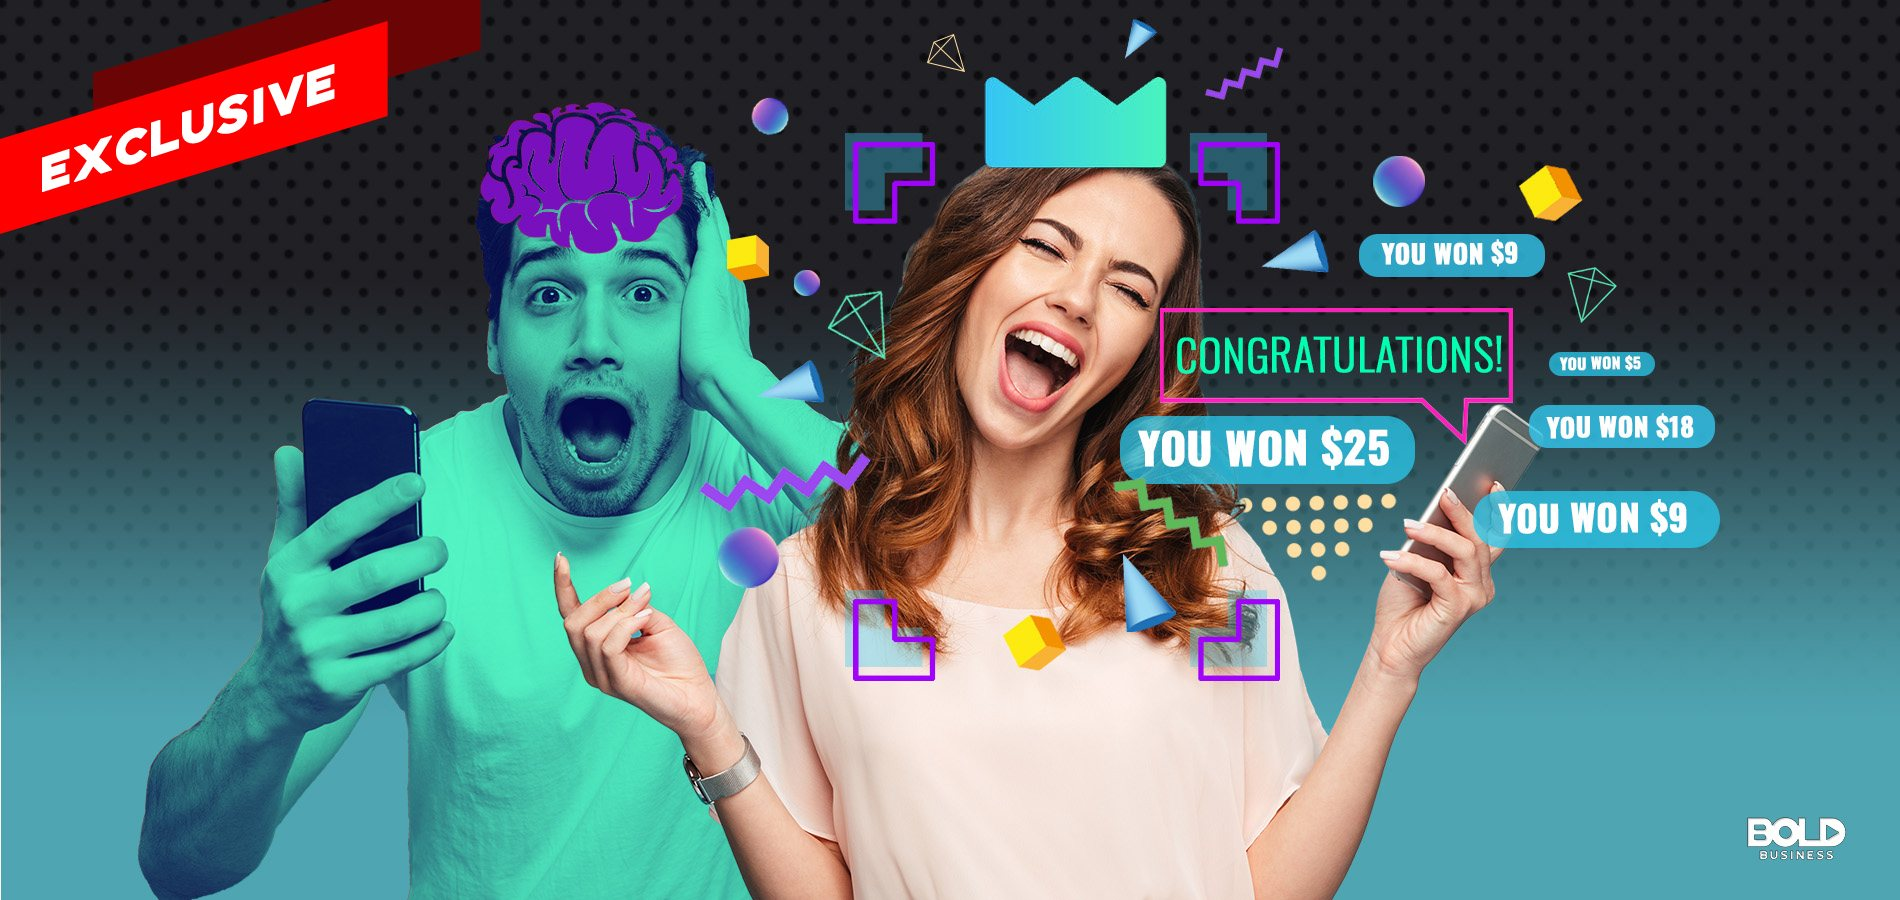 Proveit - woman winning in an online competitive gaming app.